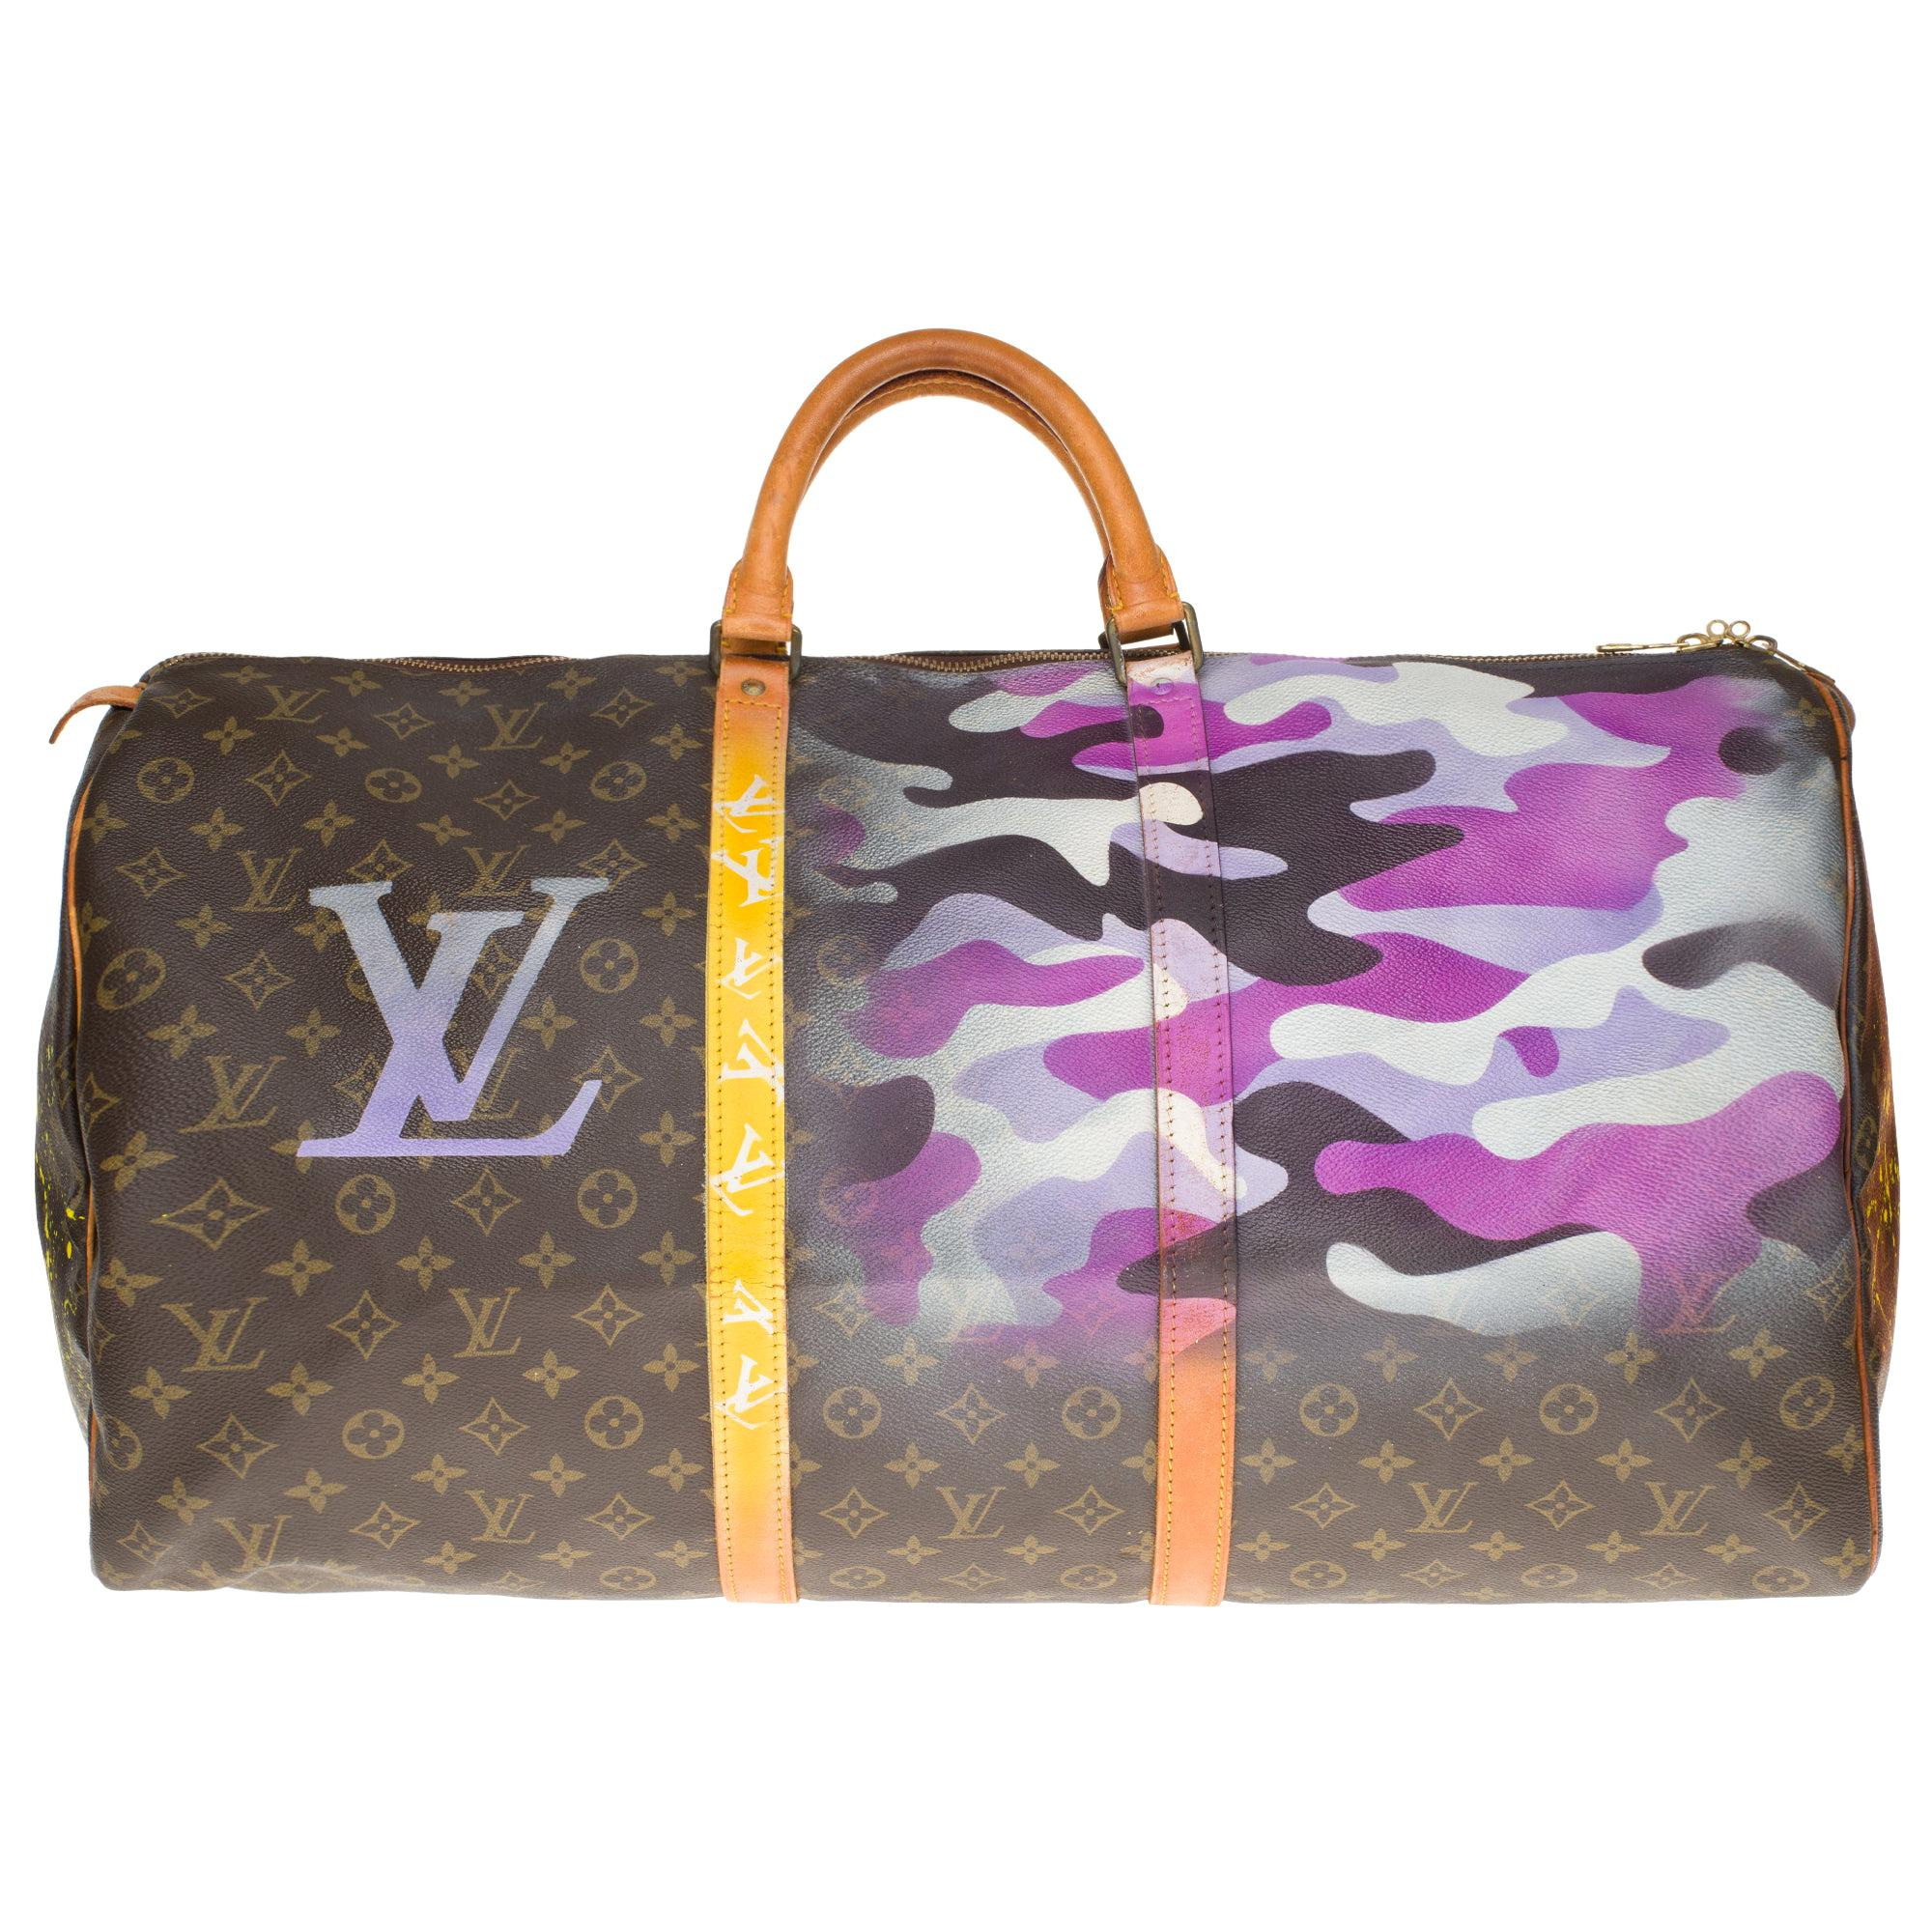 LV Keepall 60 Travel bag in monogram canvas customized by PatBo !